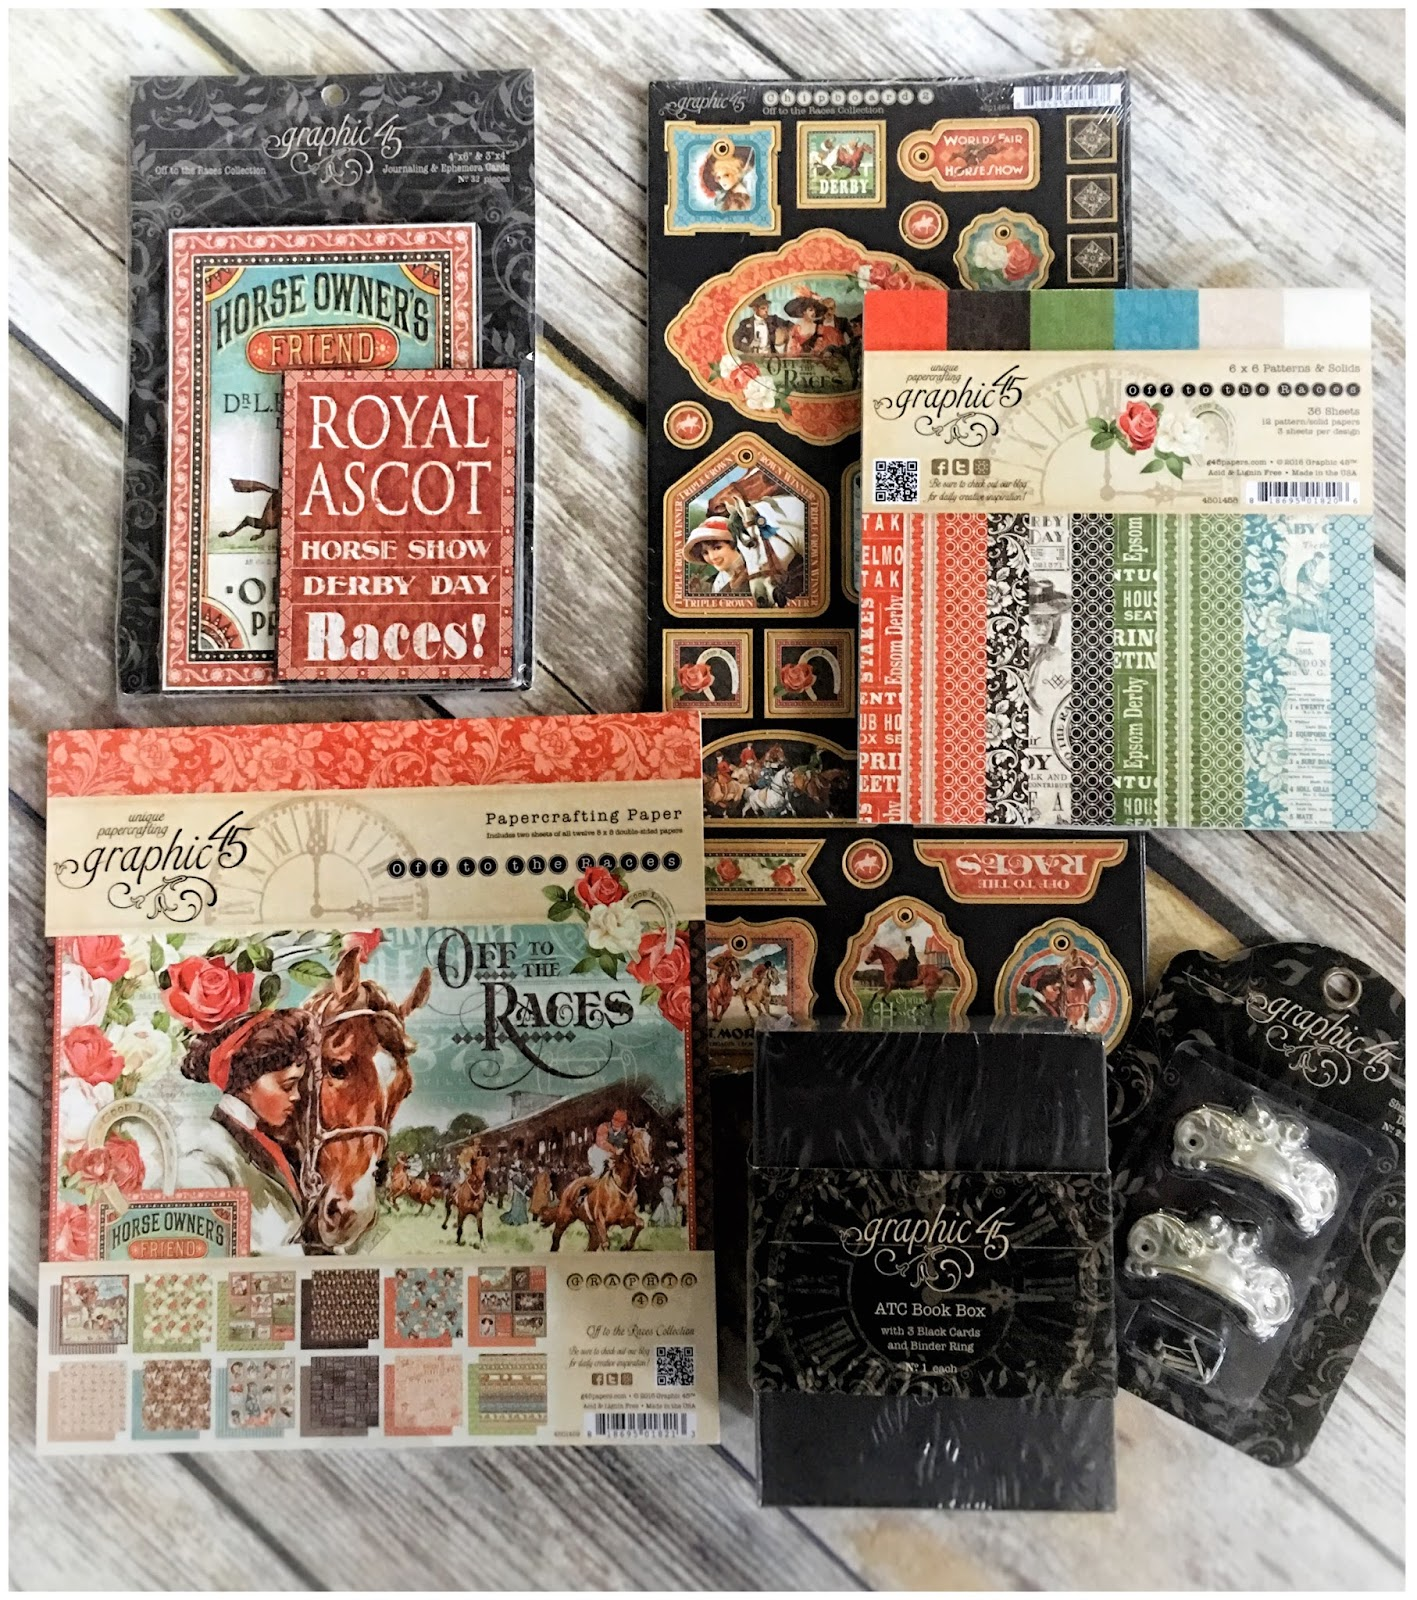 (FB prize April 14) Off to the Races, ATC Book Box, Metal Prize $40 Graphic 45